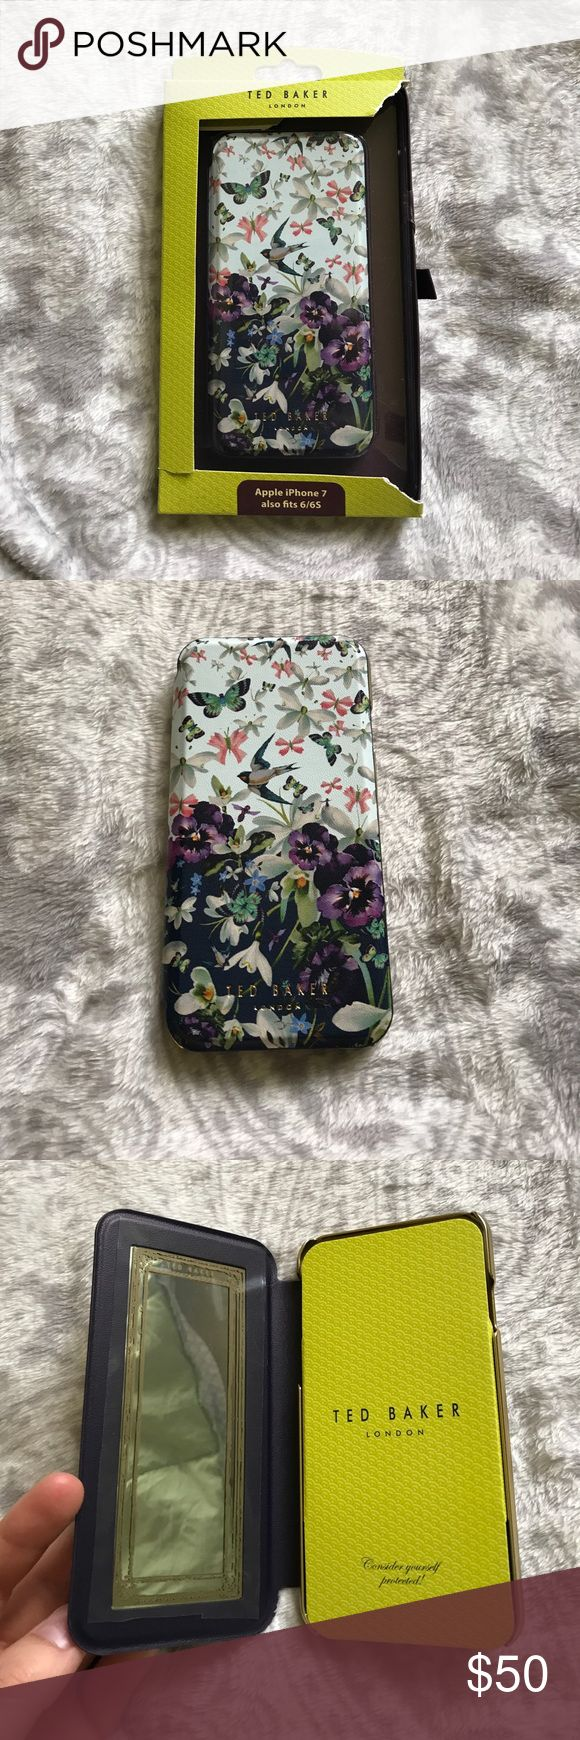 TED BAKER book-style phone case iPhone 7 (also fits 6/6s) TED BAKER book-style phone case. I have never used this phone case as it is still in the packaging.  Bought from the TED BAKER store in Las Vegas. Ted Baker London Accessories Phone Cases